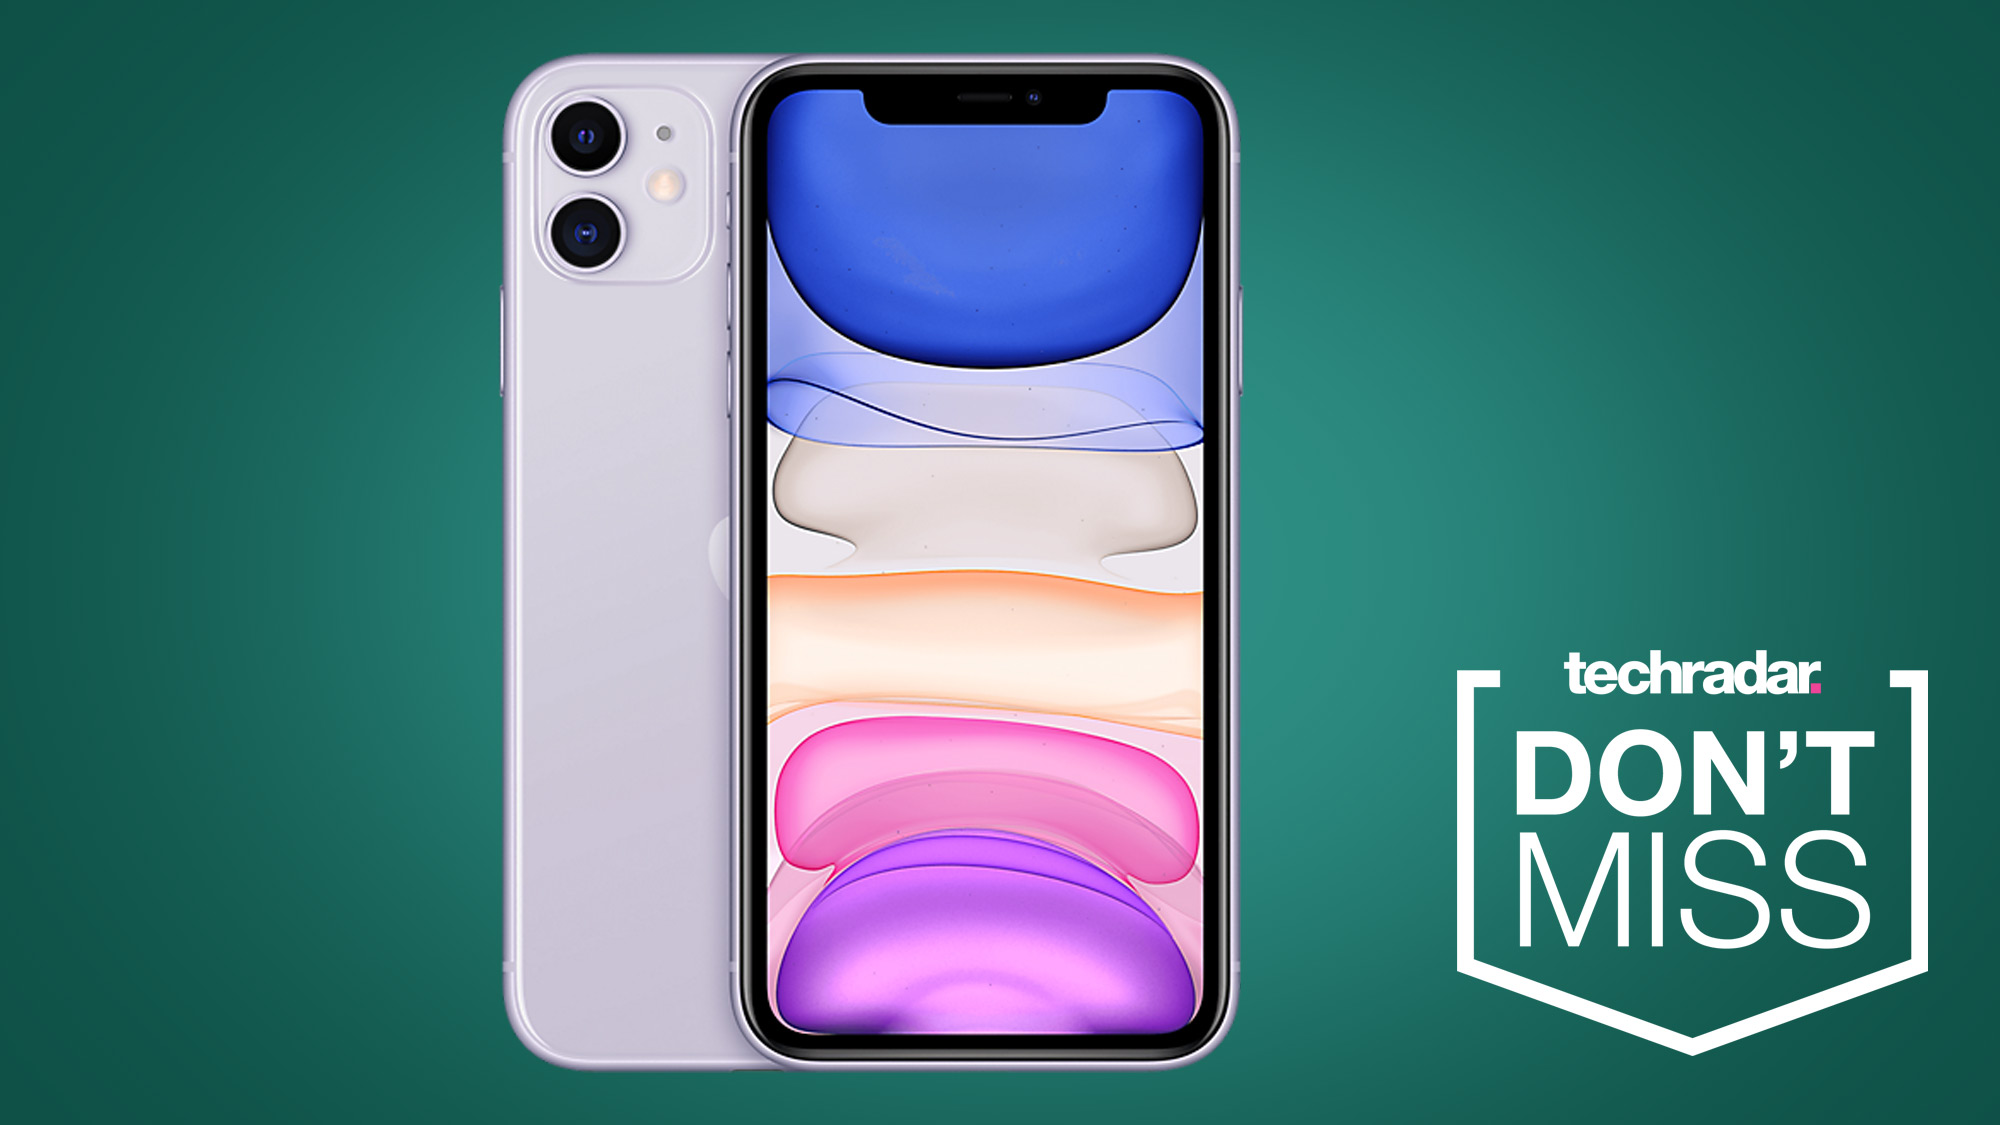 iPhone 11 deals on EE are looking extremely affordable right now